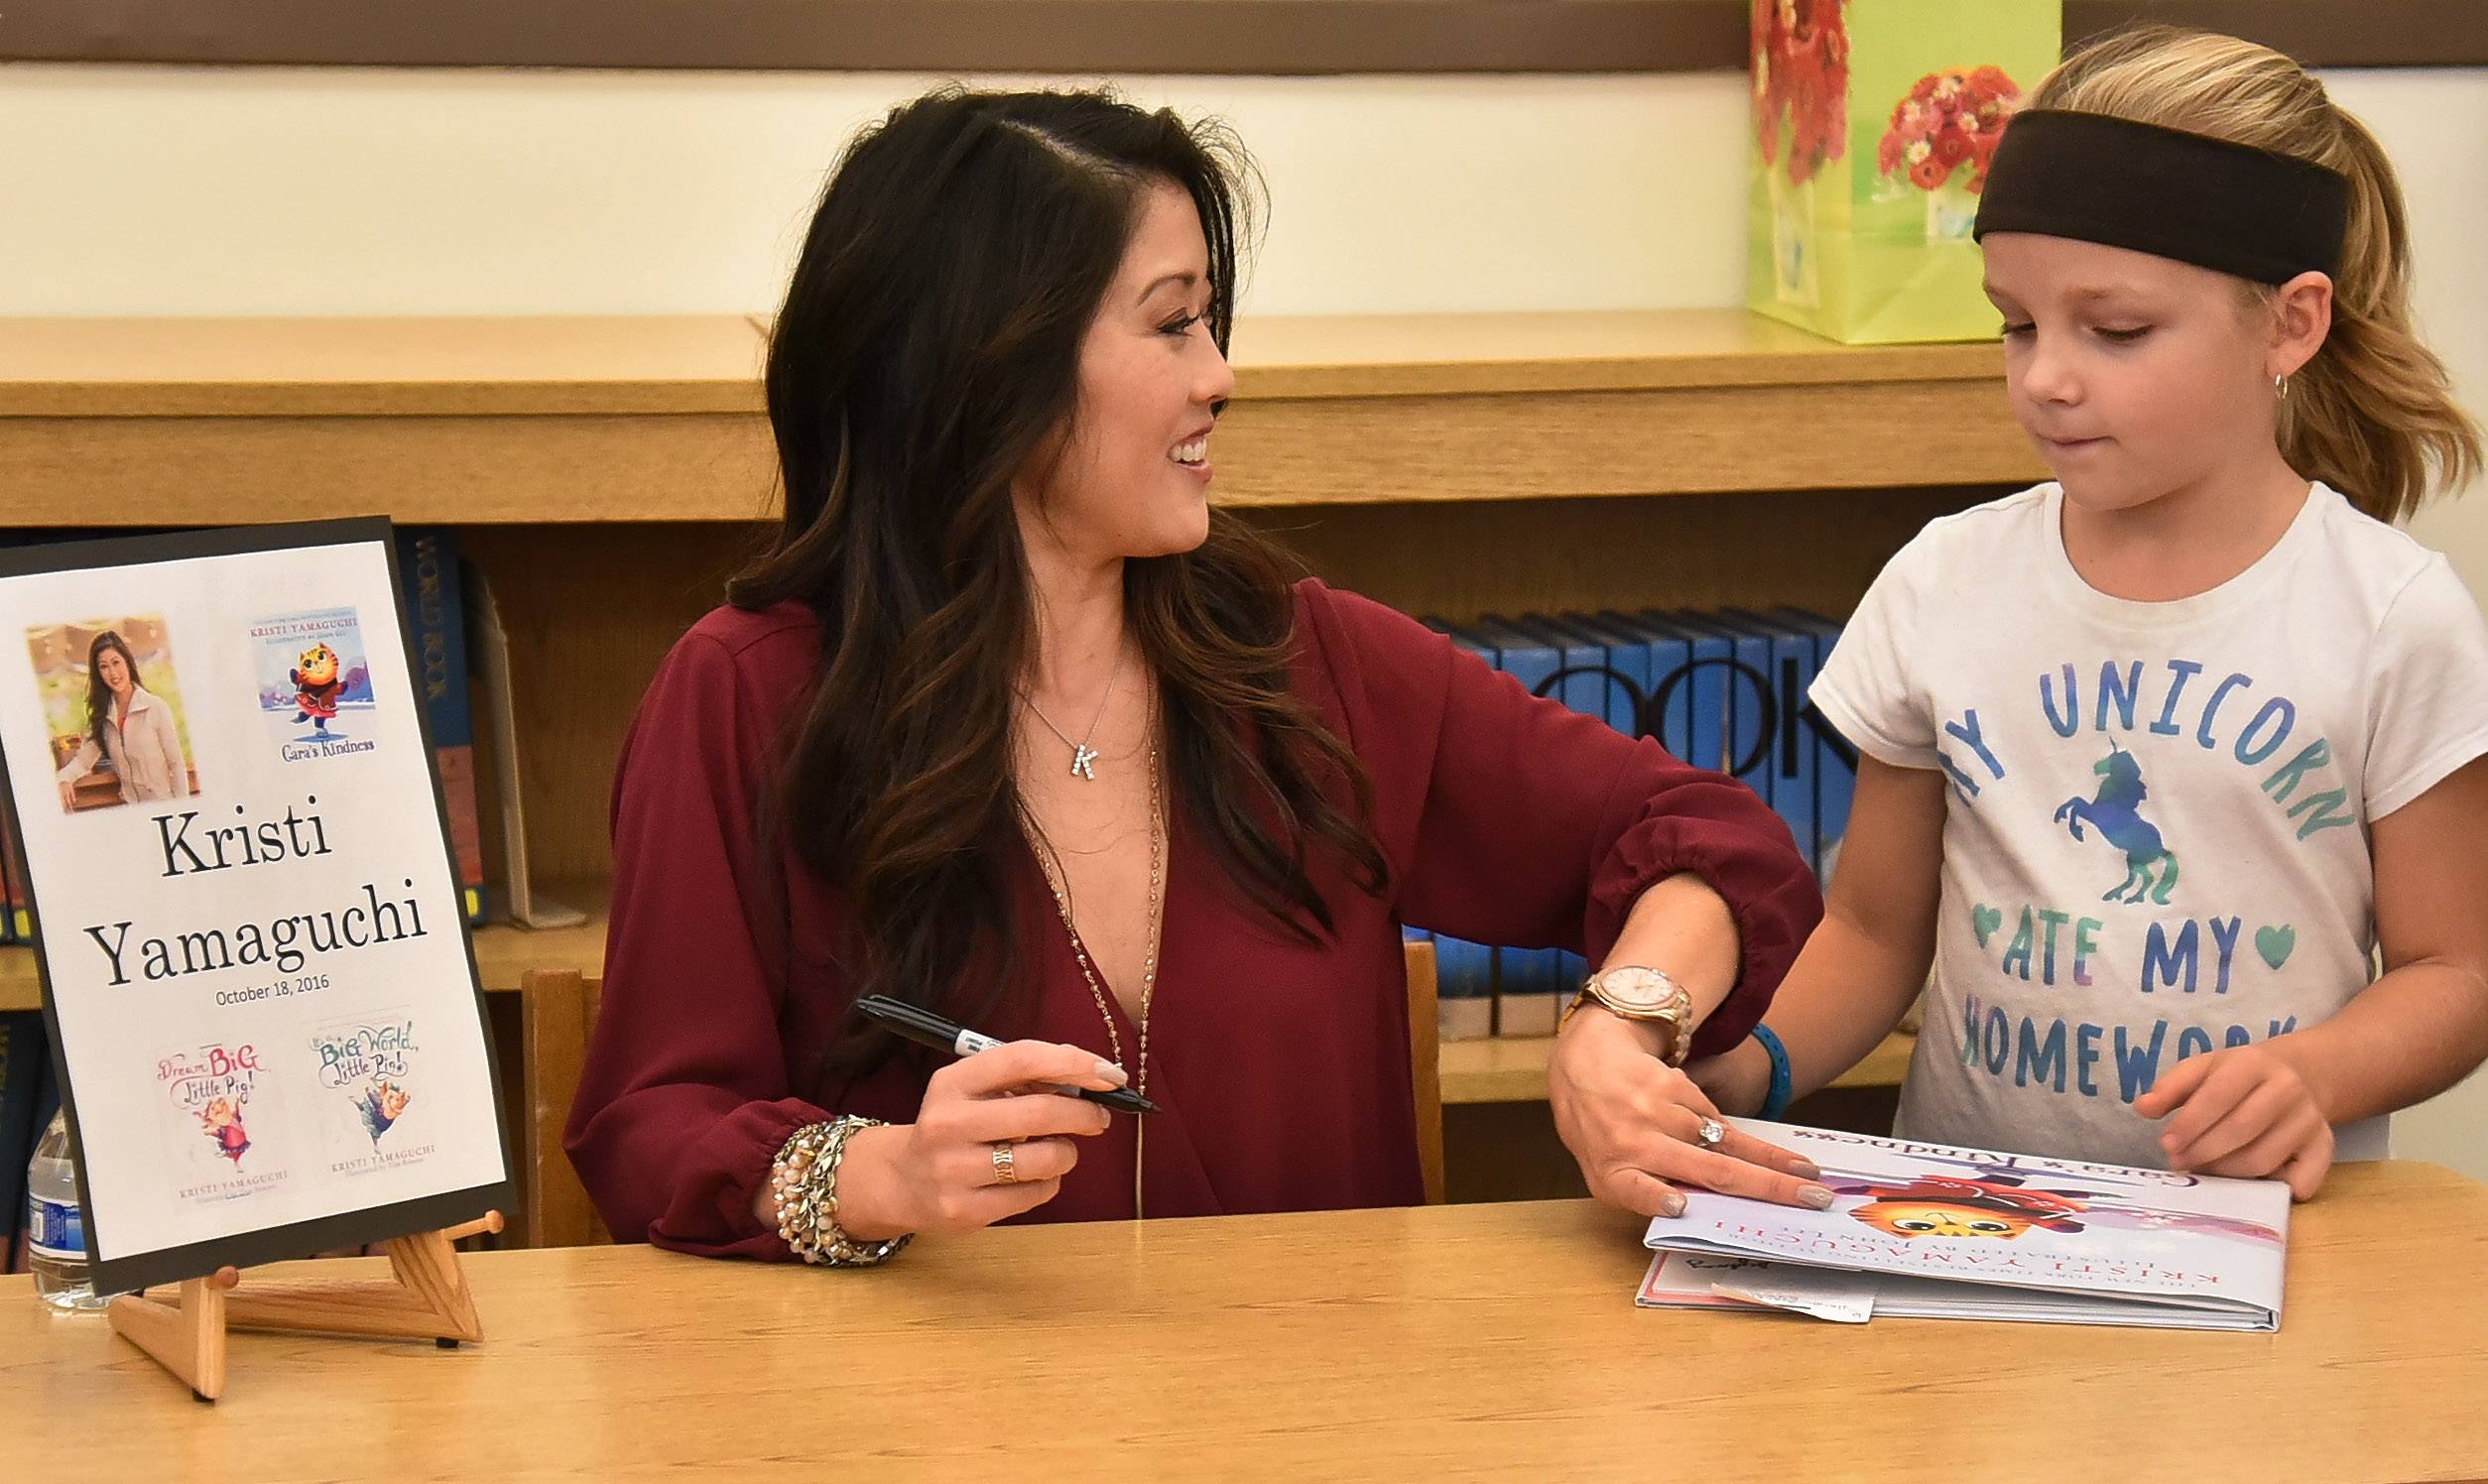 Kristi Yamaguchi met with students at Frank C. Whiteley School in Hoffman Estates on Tuesday.